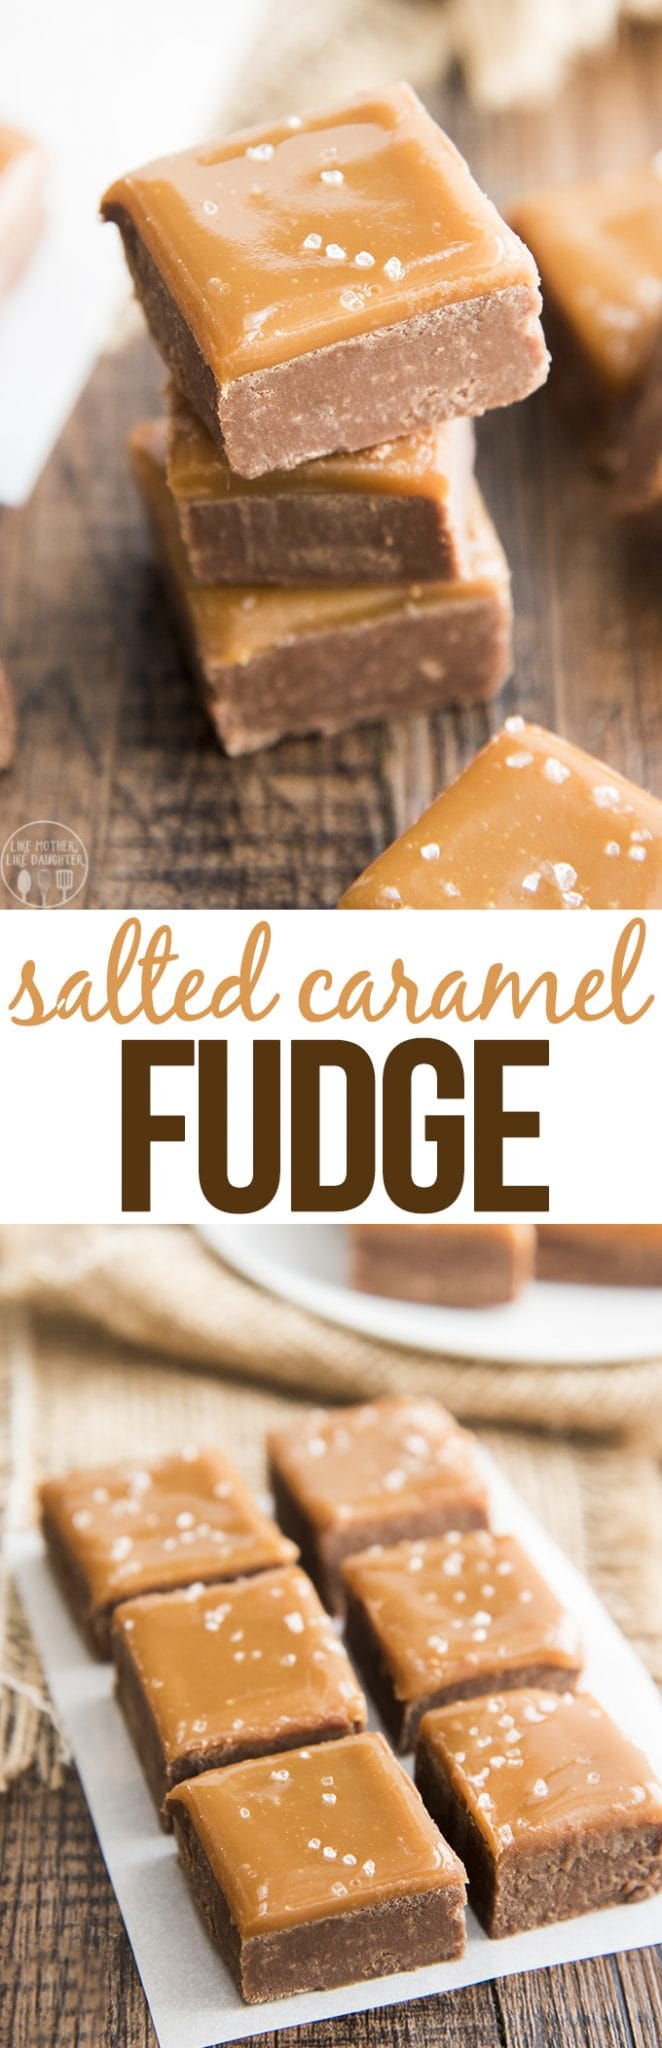 This salted caramel fudge recipe is the best creamy milk chocolate fudge topped with a layer of smooth caramel, sprinkled with coarse sea salt.